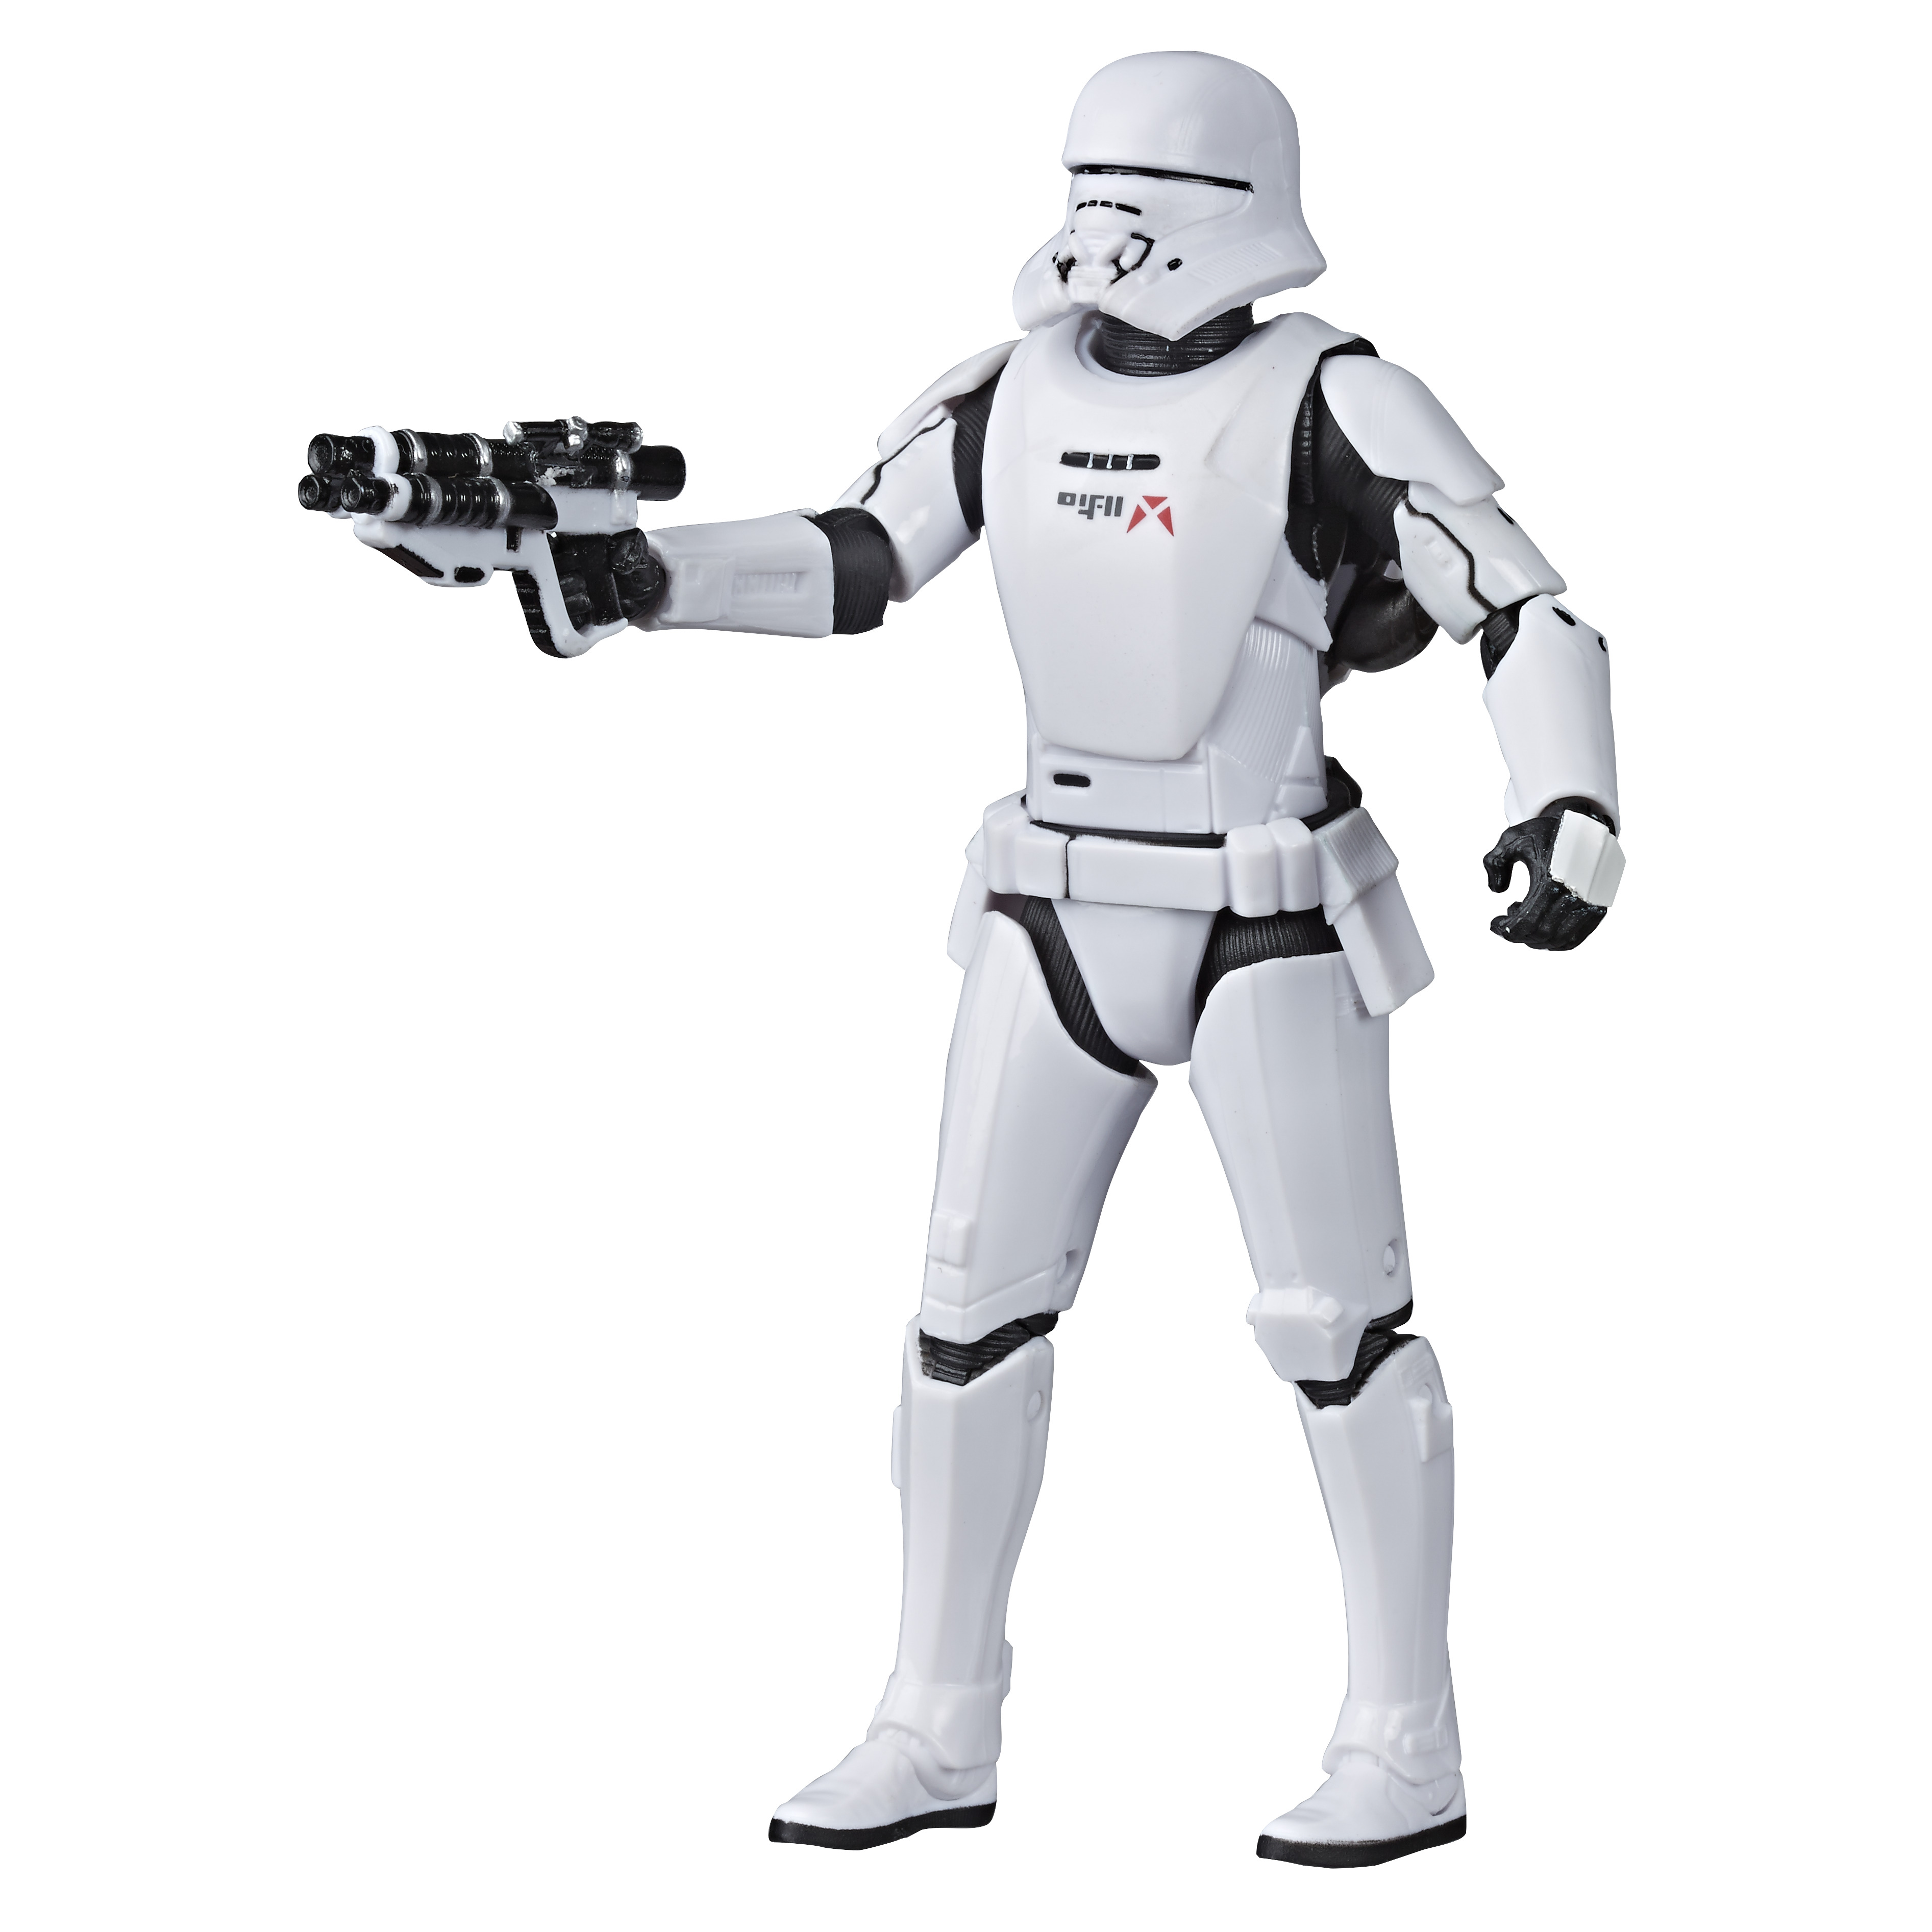 Star Wars The Black Series First Order Jet Trooper 15cm E4080 5010993635559